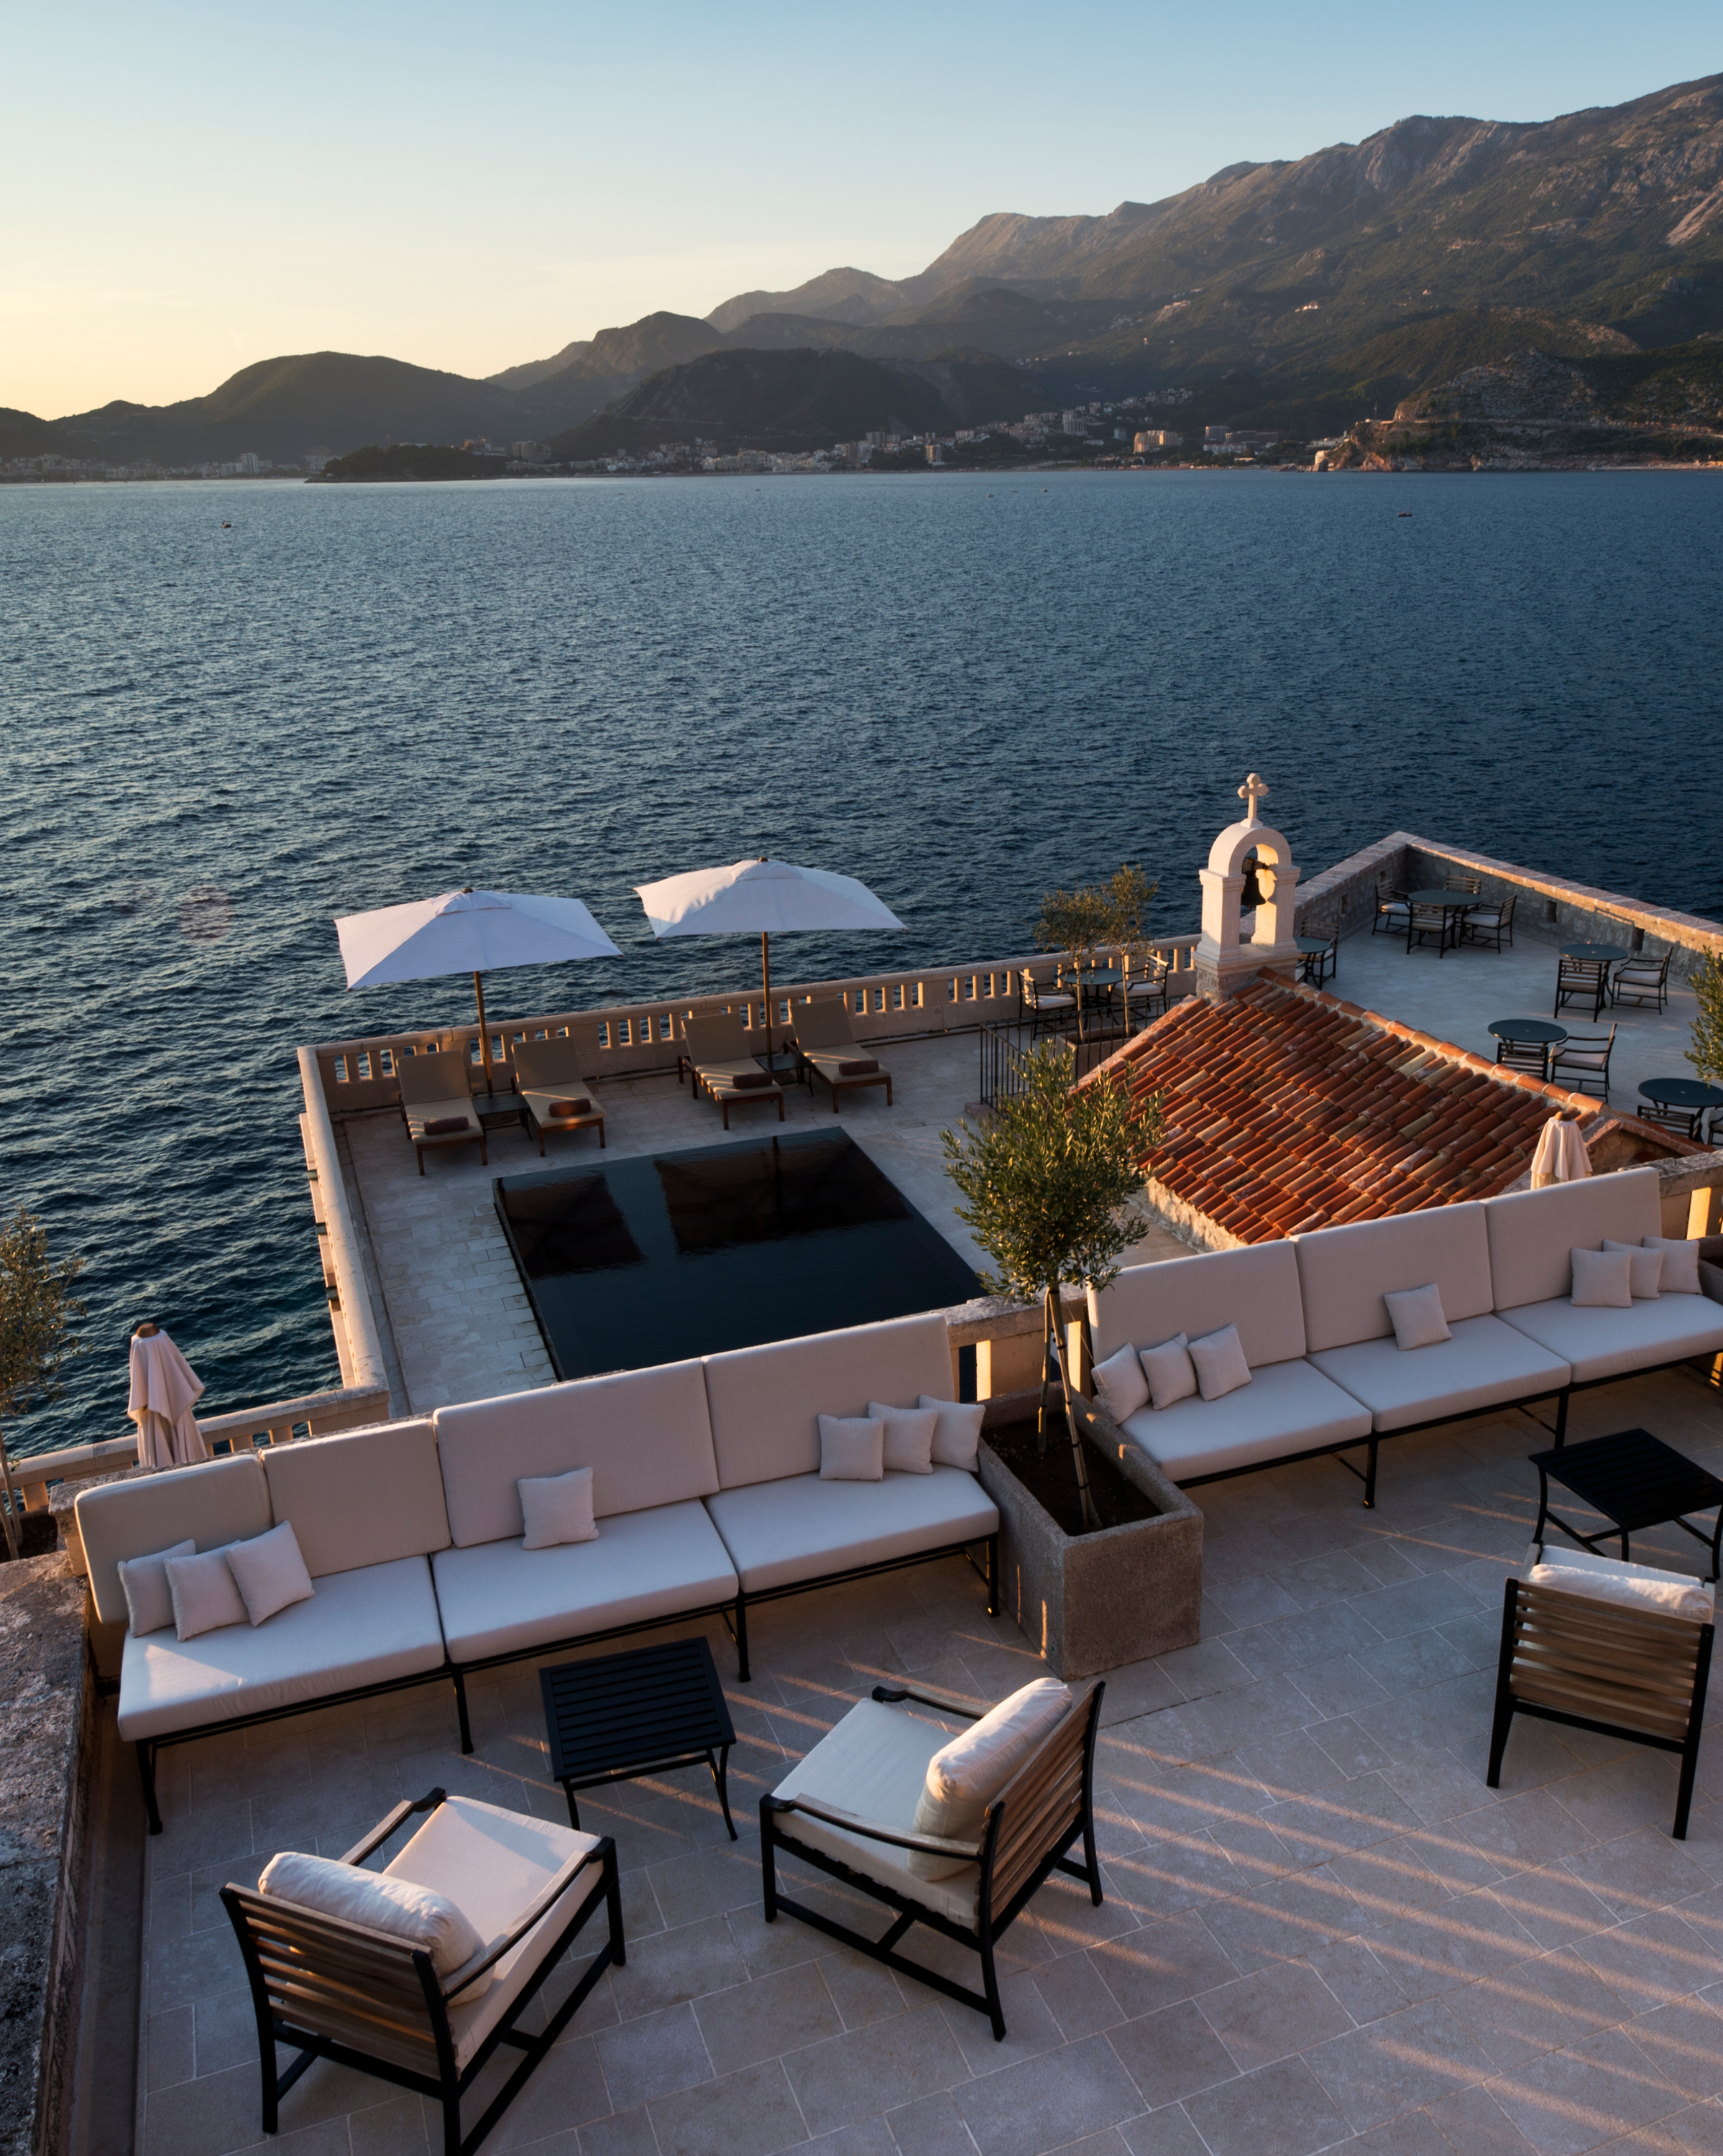 celebrity-wedding-venues-aman-sveti-stefan-upper-terrace-1015.jpg